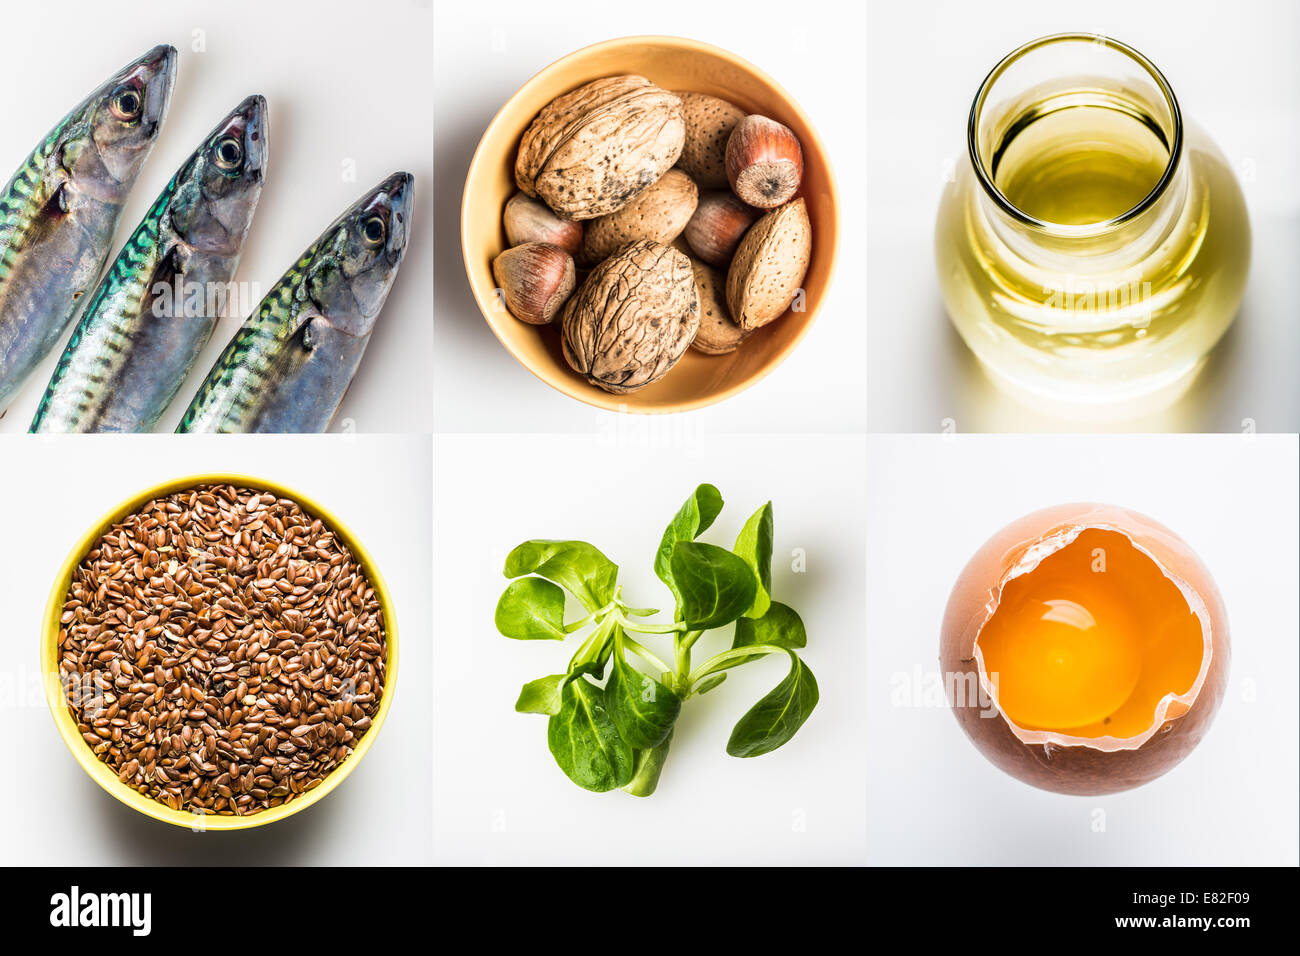 Omega 3 rich foods stock photo royalty free image for Fish rich in omega 3